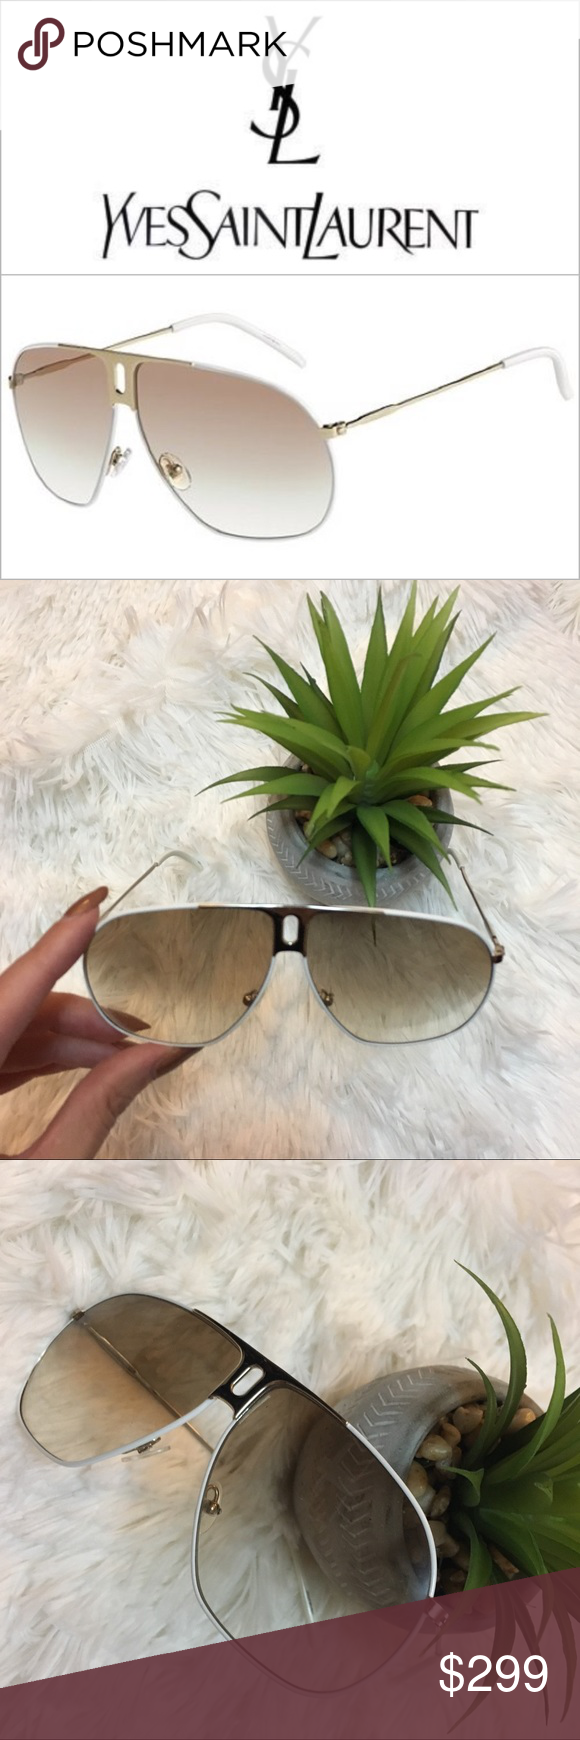 440ac50e77c20 YSL  Oversized Aviator Sunglasses. 🚁 These classic Yves Saint Laurent  sunglasses come in a stylish Gold White